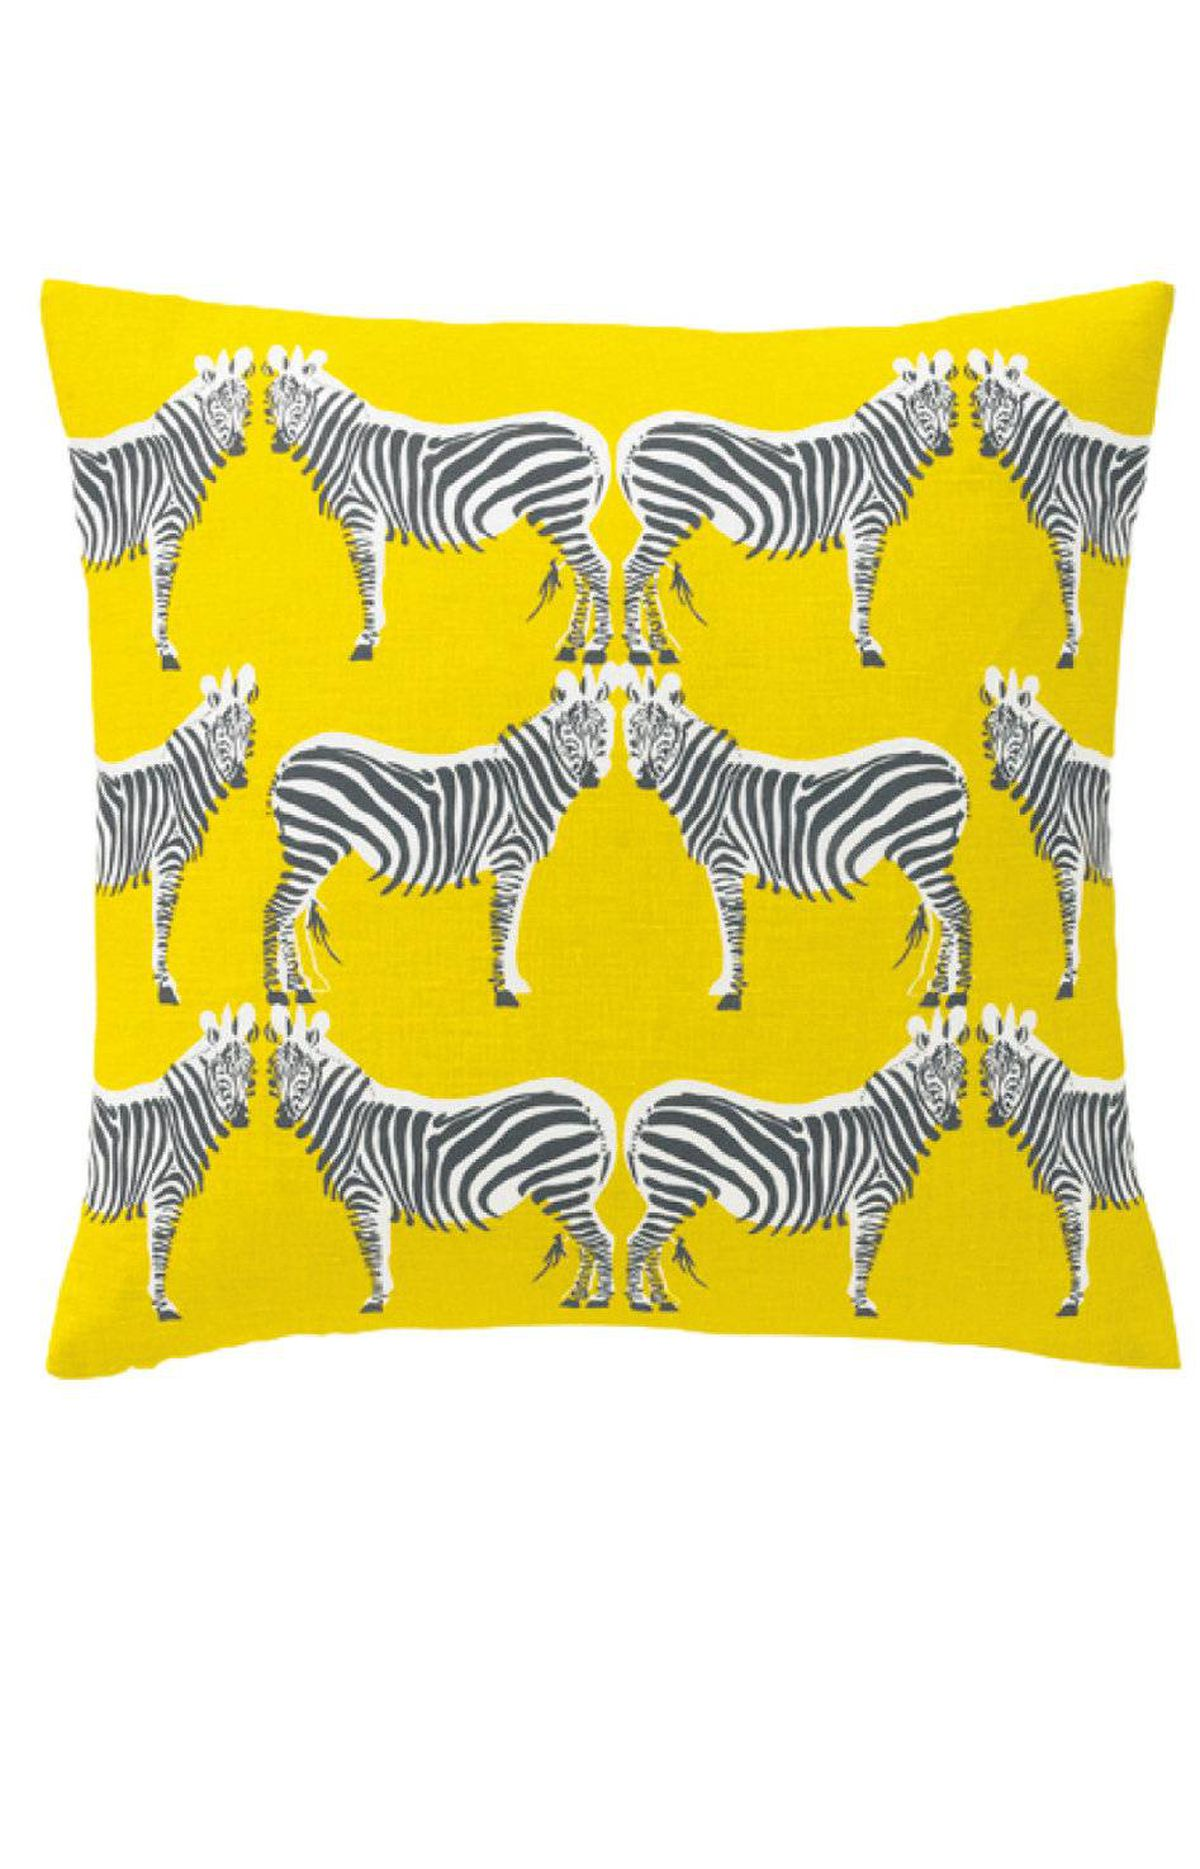 Classic zebra print gets updated in bold yellow … and with actual zebras! Dwell zebra pillow in Citrine, $72 through www.dwell.com.